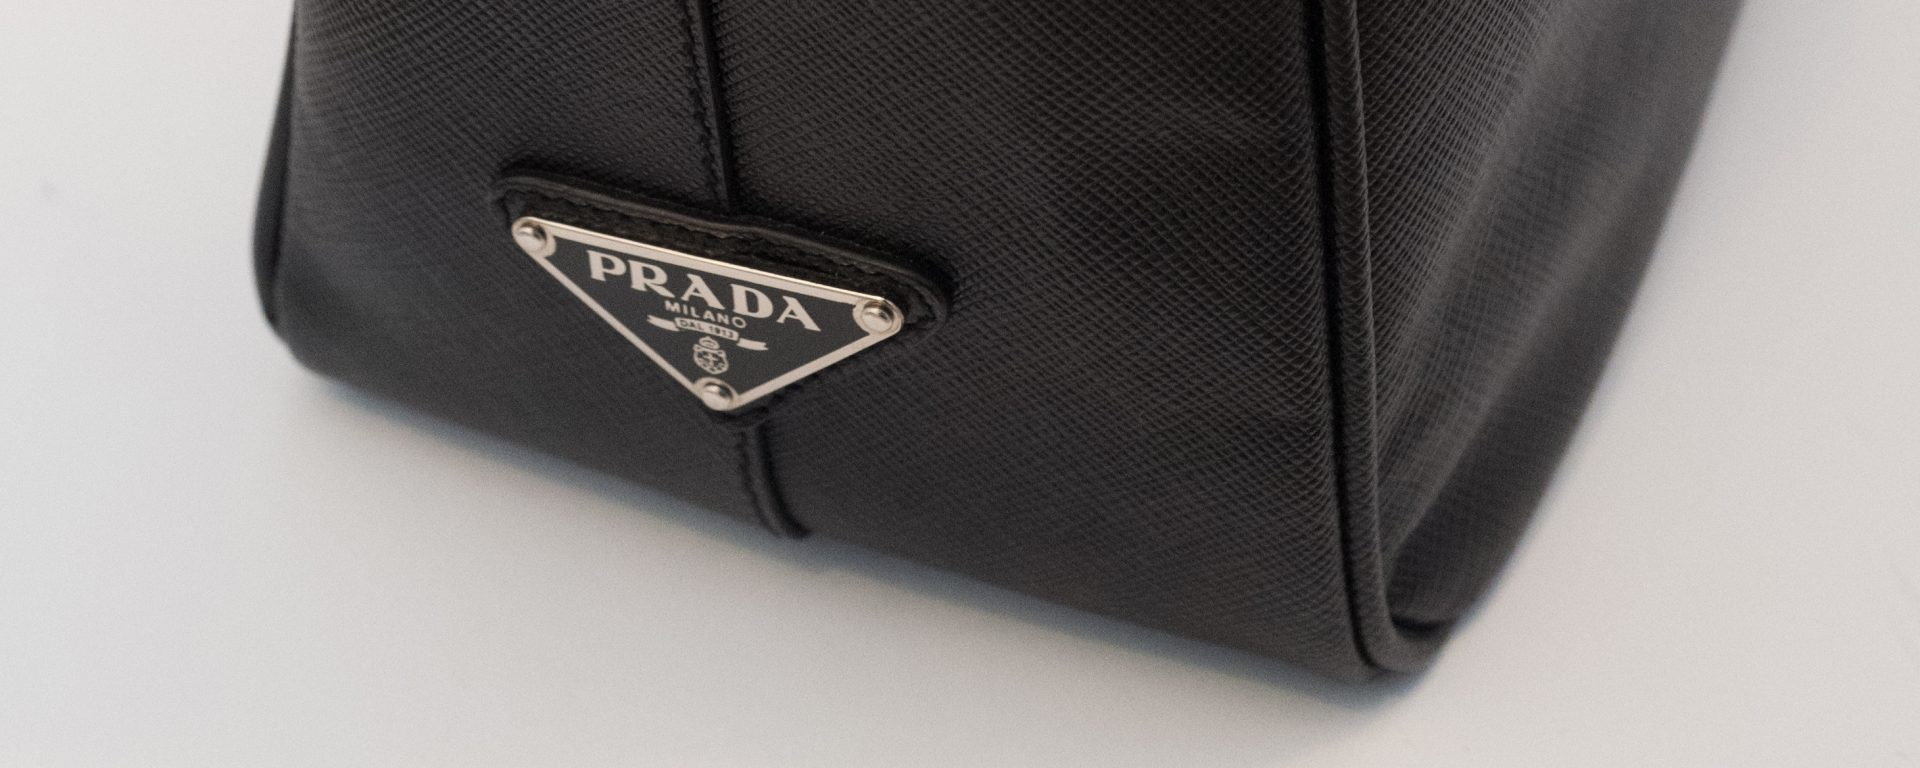 9710a67fede4 Prada black leather briefcase – Retro Gym Geek